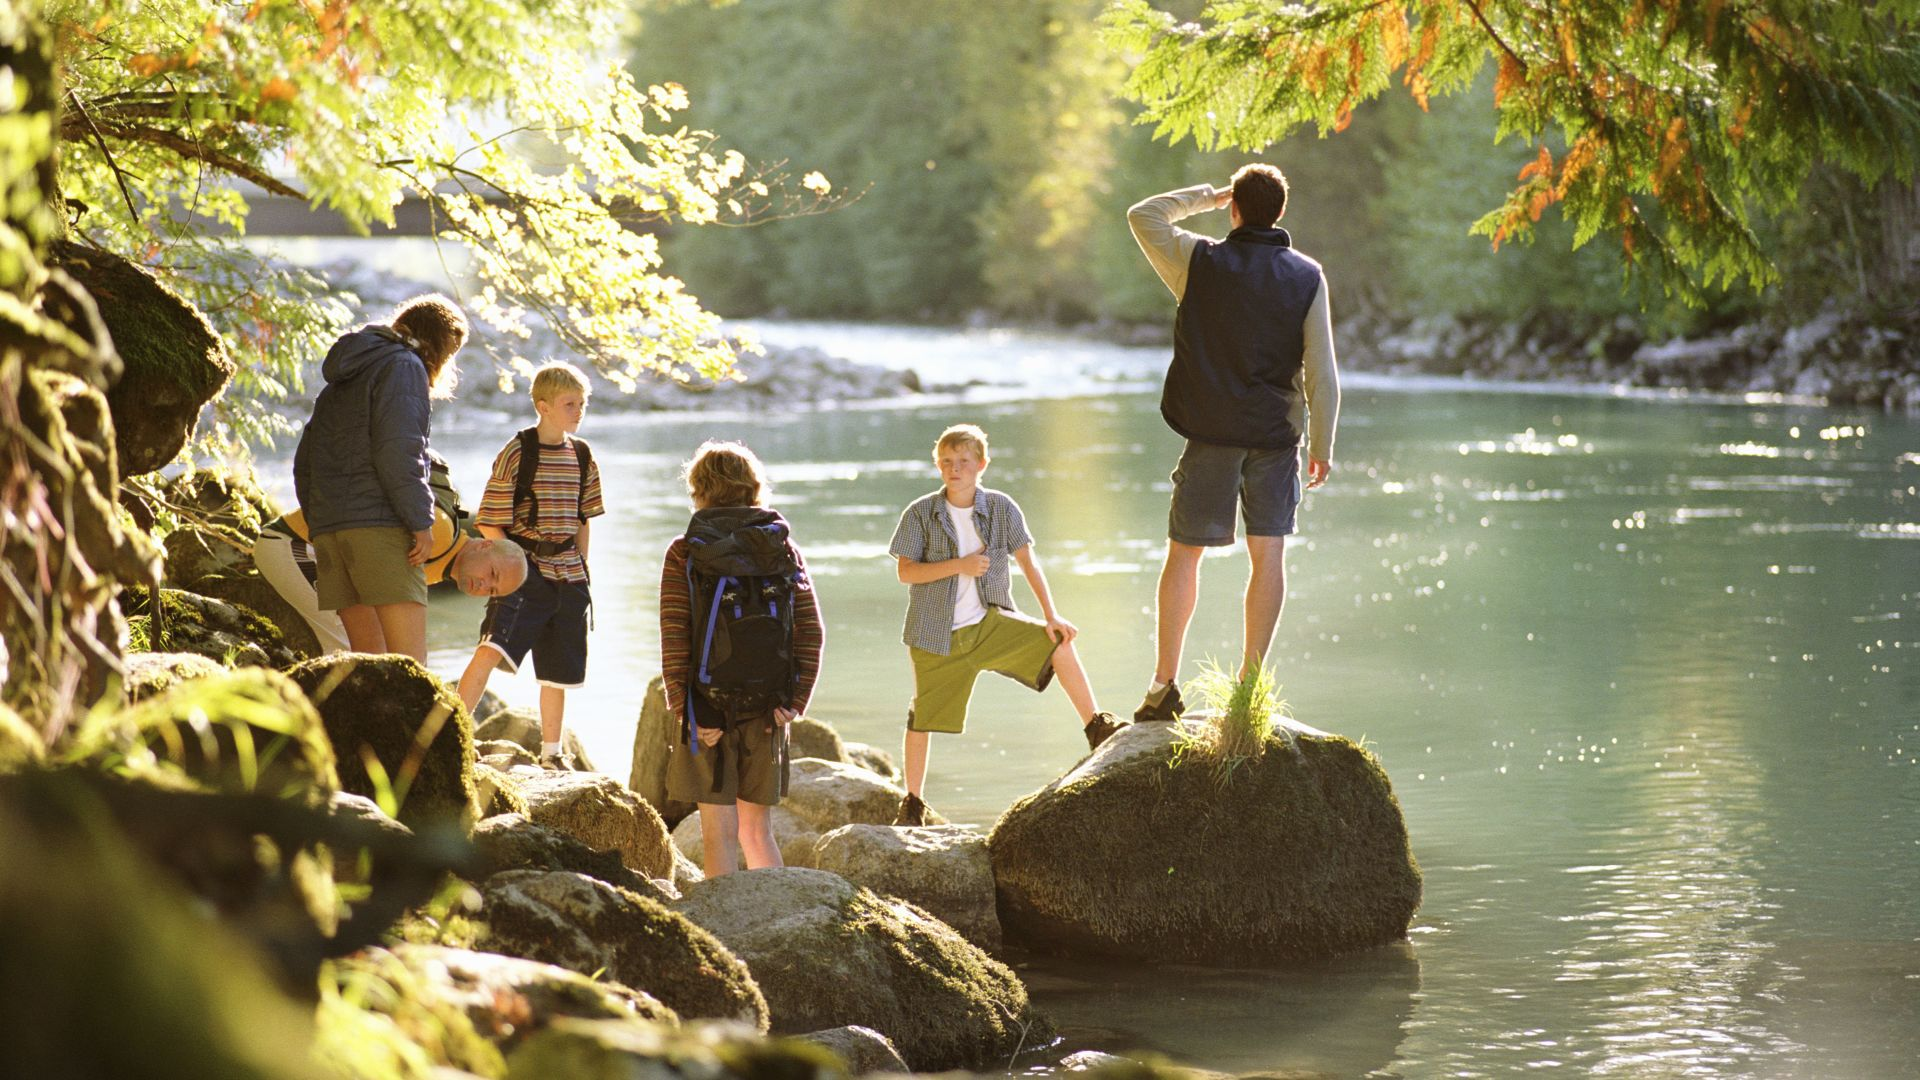 A Group Of People Standing In A River